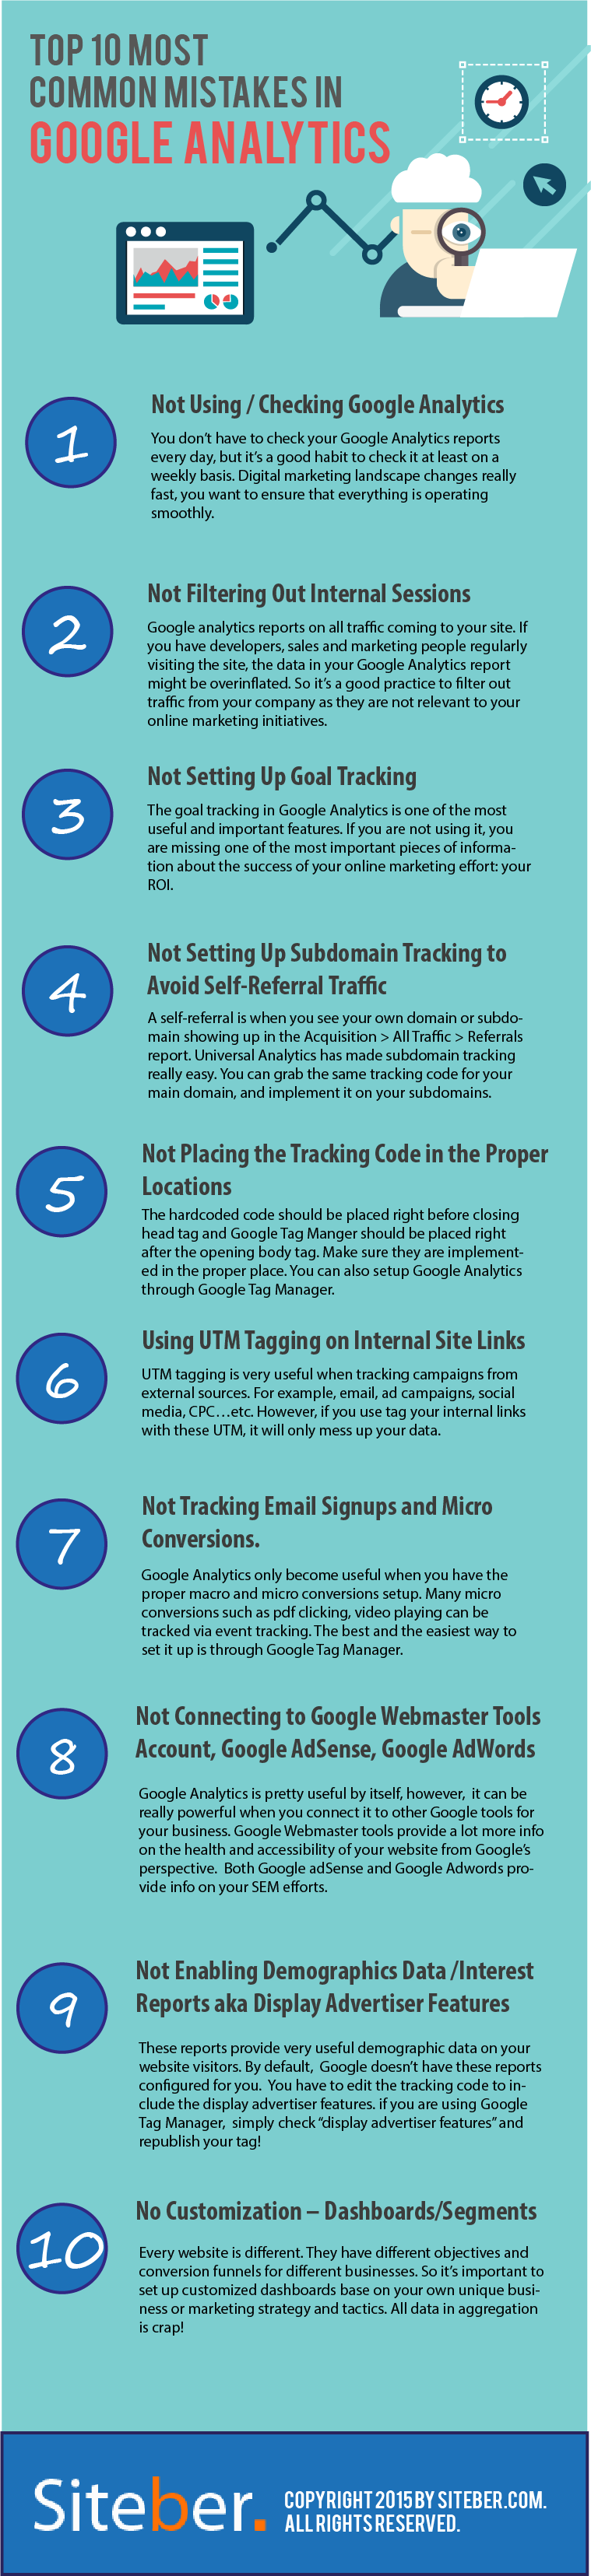 Top 10 most common mistakes in google analytics